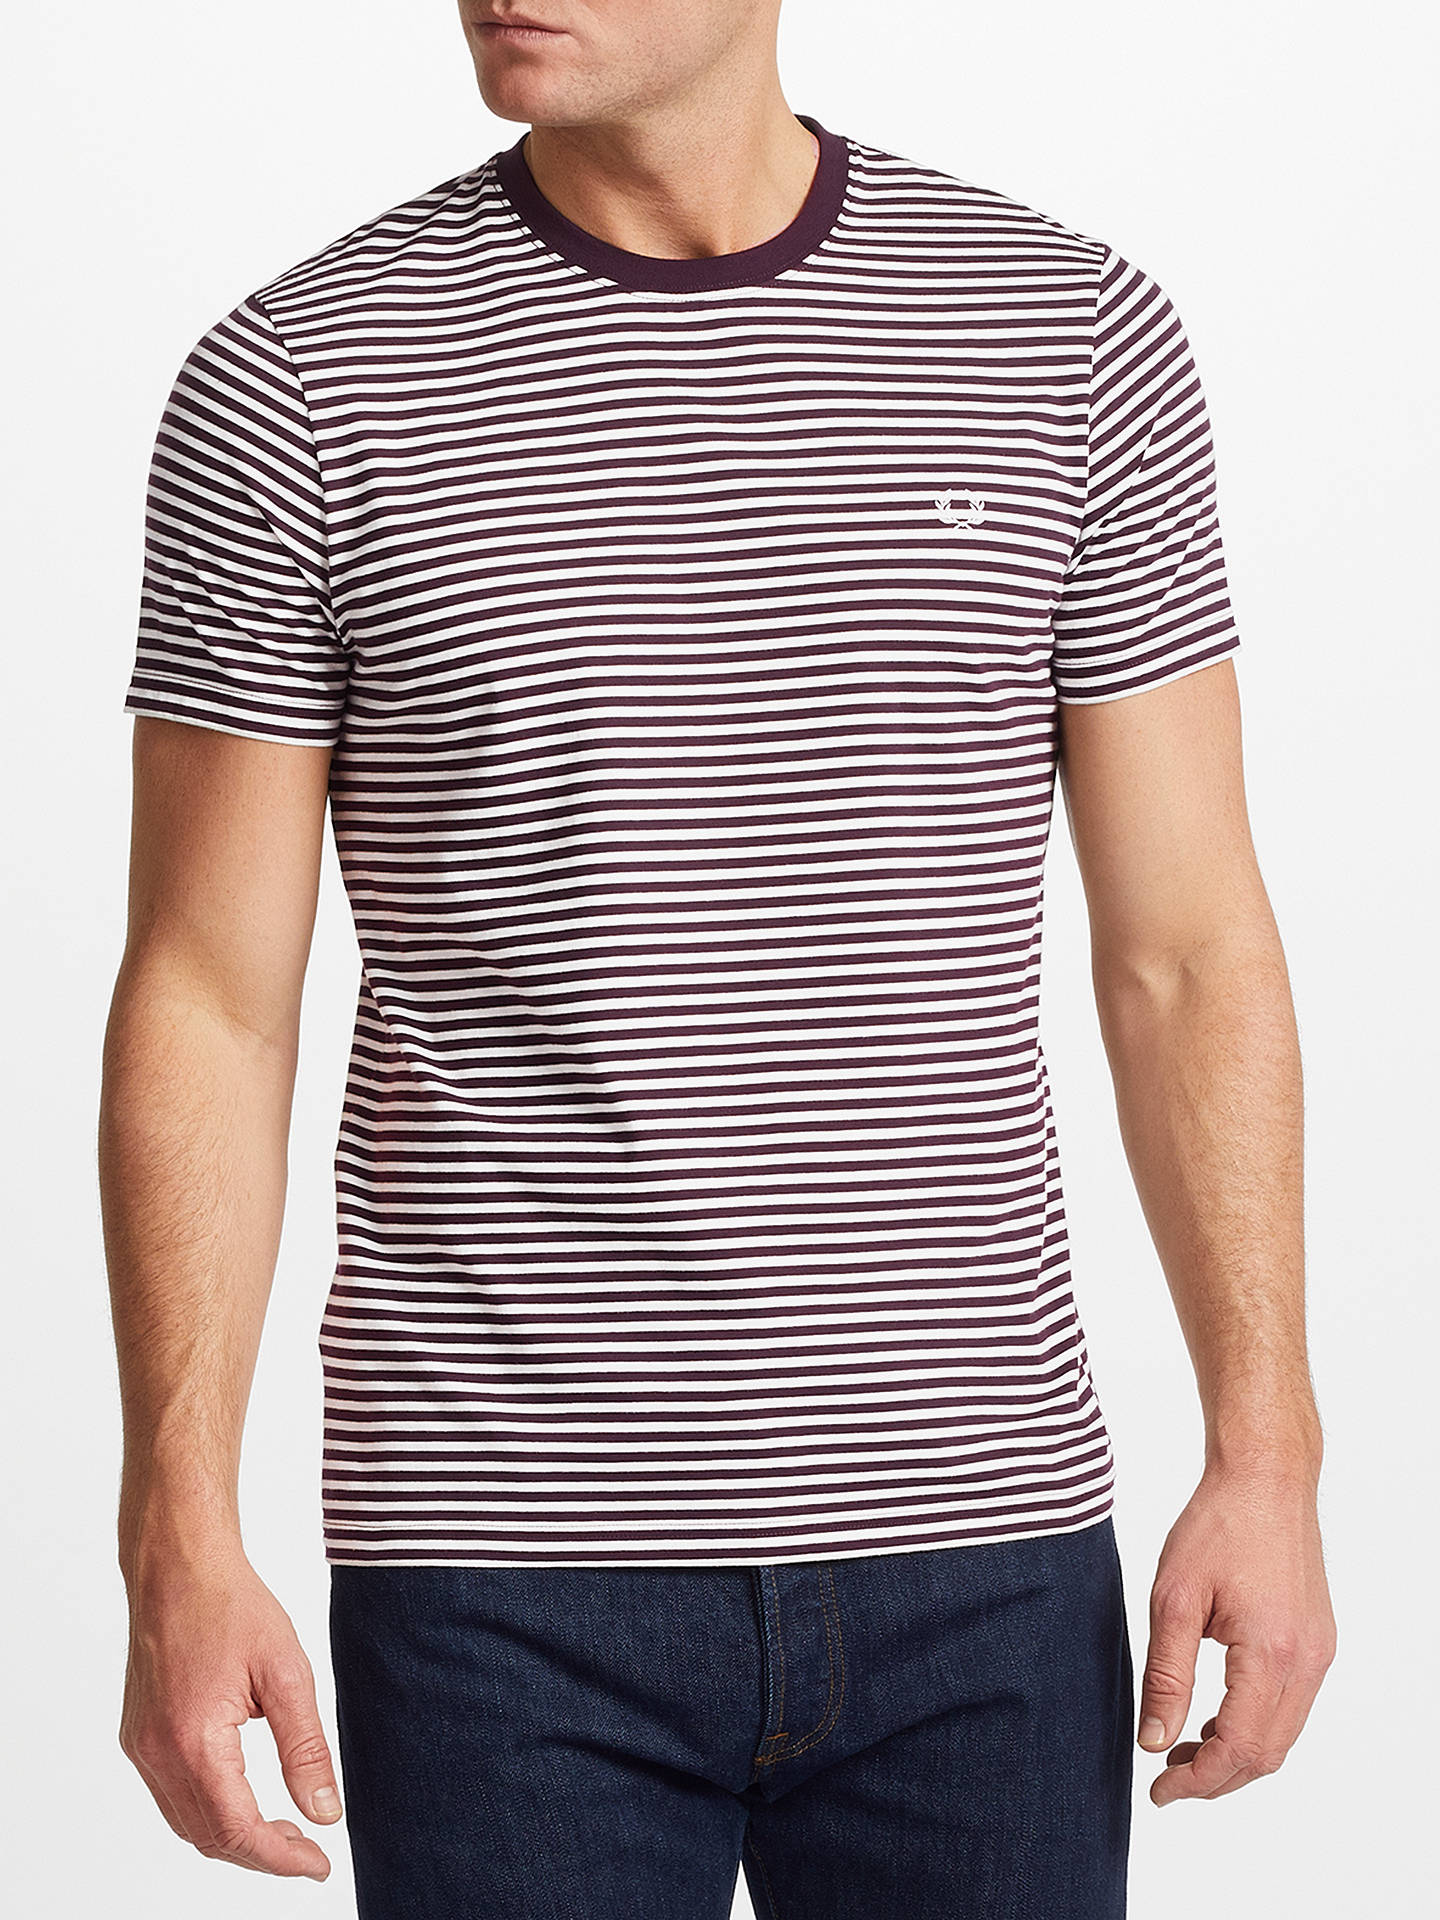 5074d7cba Fred Perry Feeder Striped T-Shirt at John Lewis   Partners